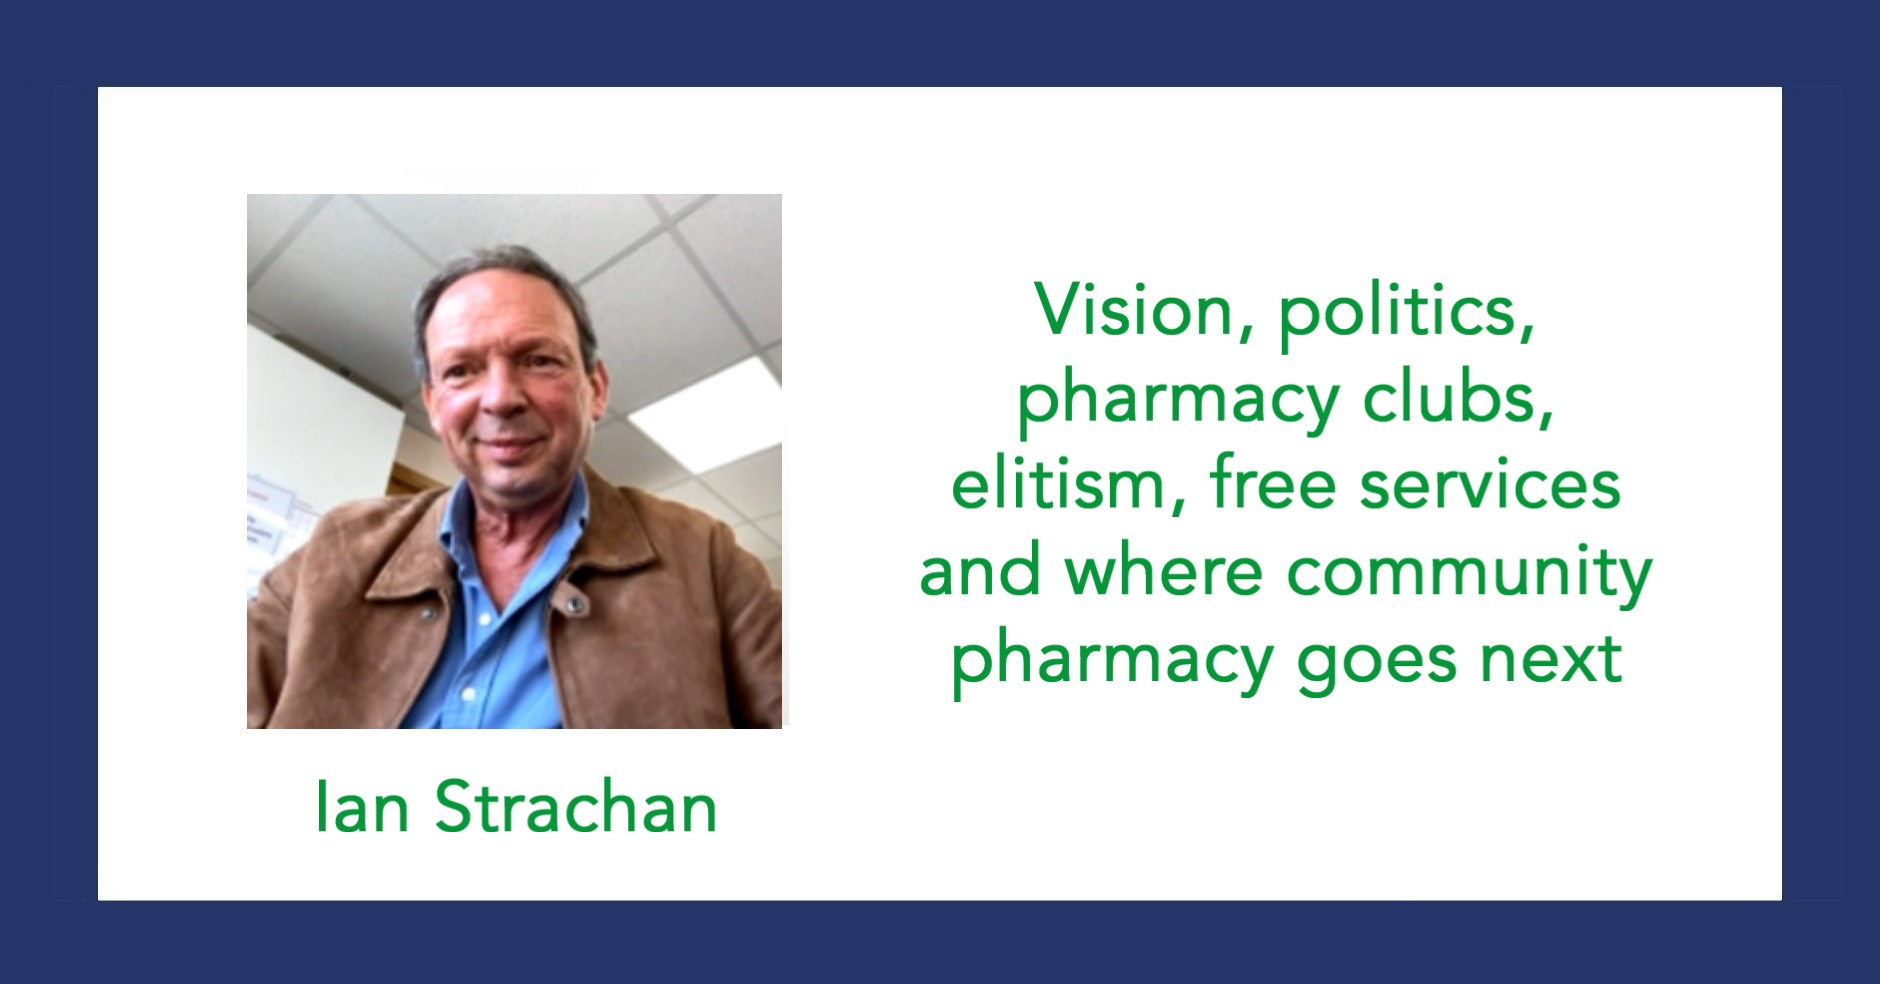 Vision, politics, pharmacy clubs, elitism, free services and where community pharmacy goes next